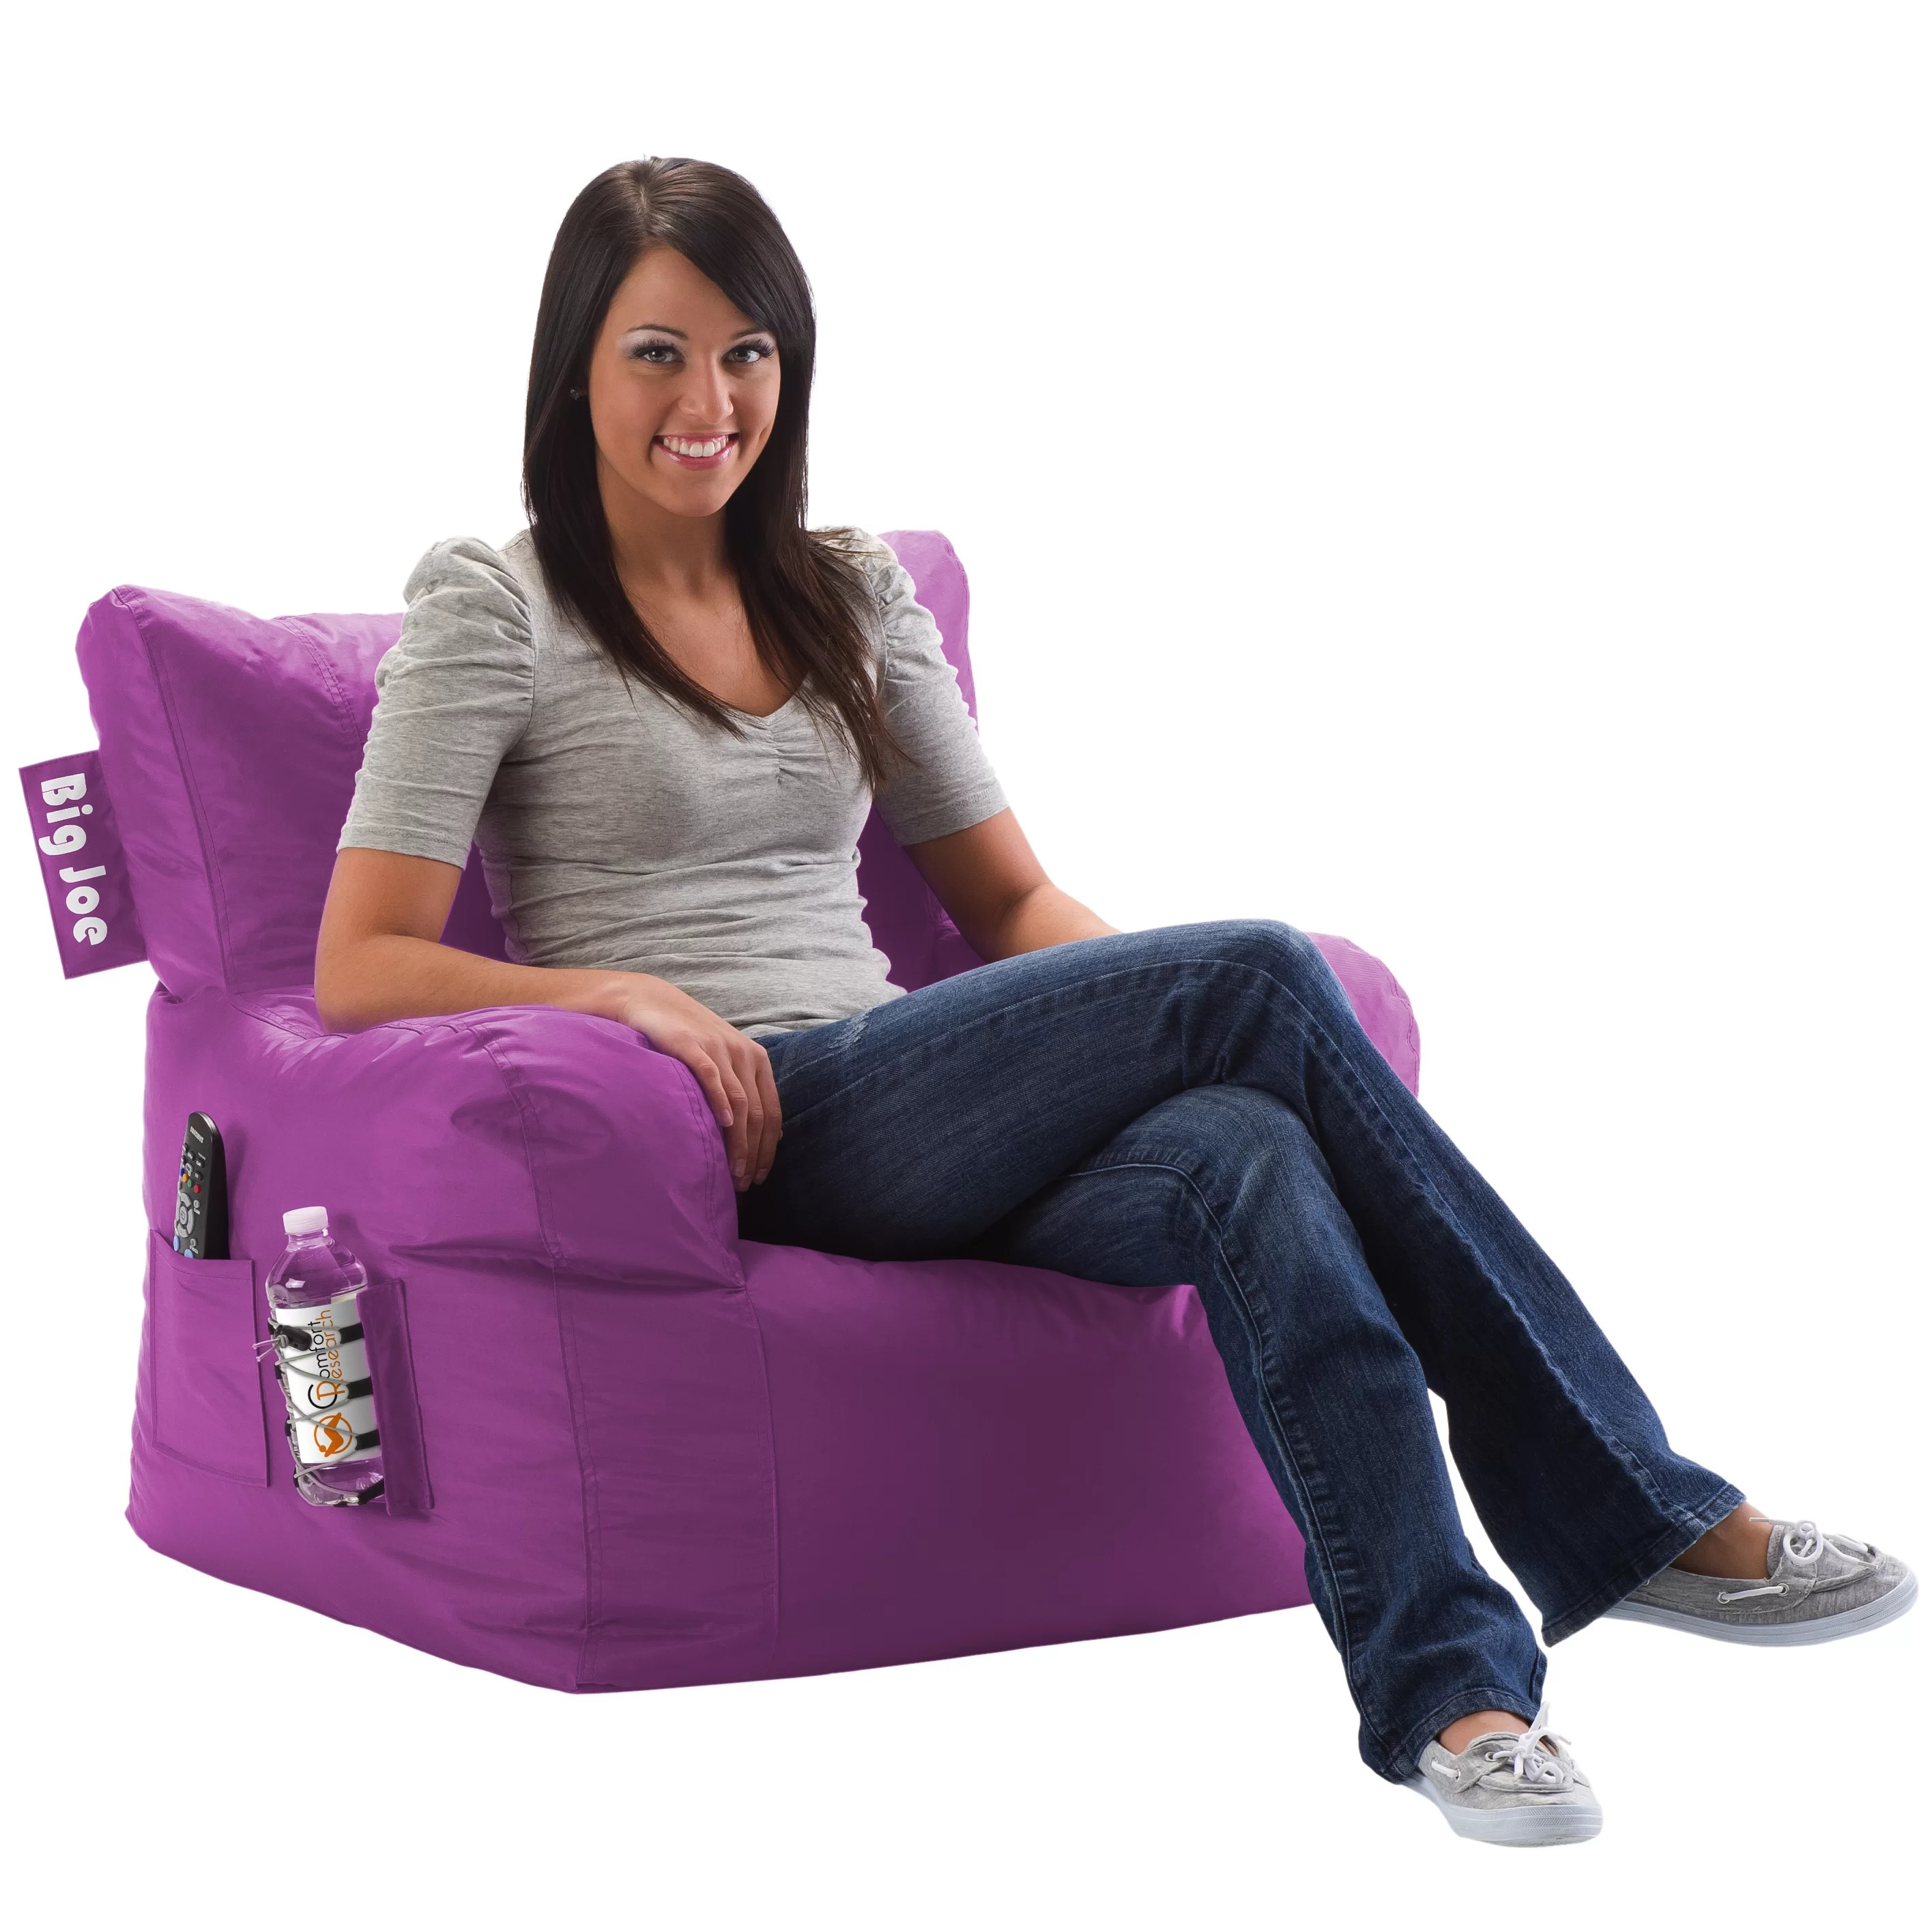 Comfortable Bean Bag Chairs Comfort Research Big Joe Bean Bag Chair And Reviews Wayfair